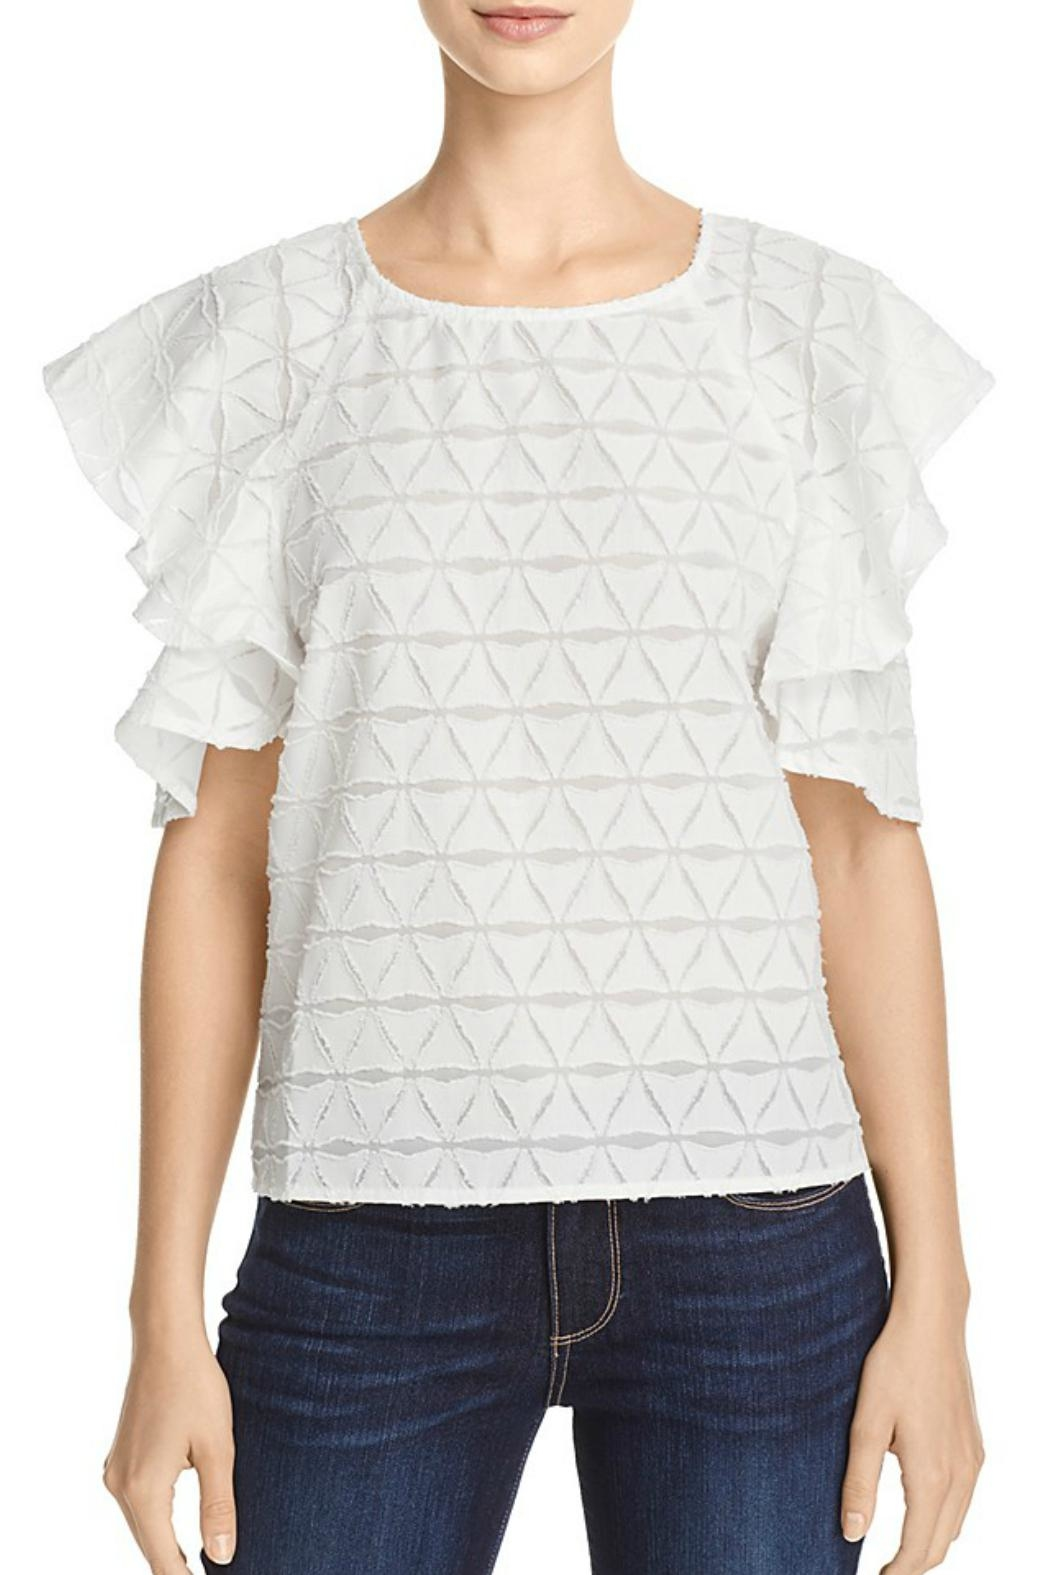 J.O.A. Tiered Cold Shoulder Top - Main Image